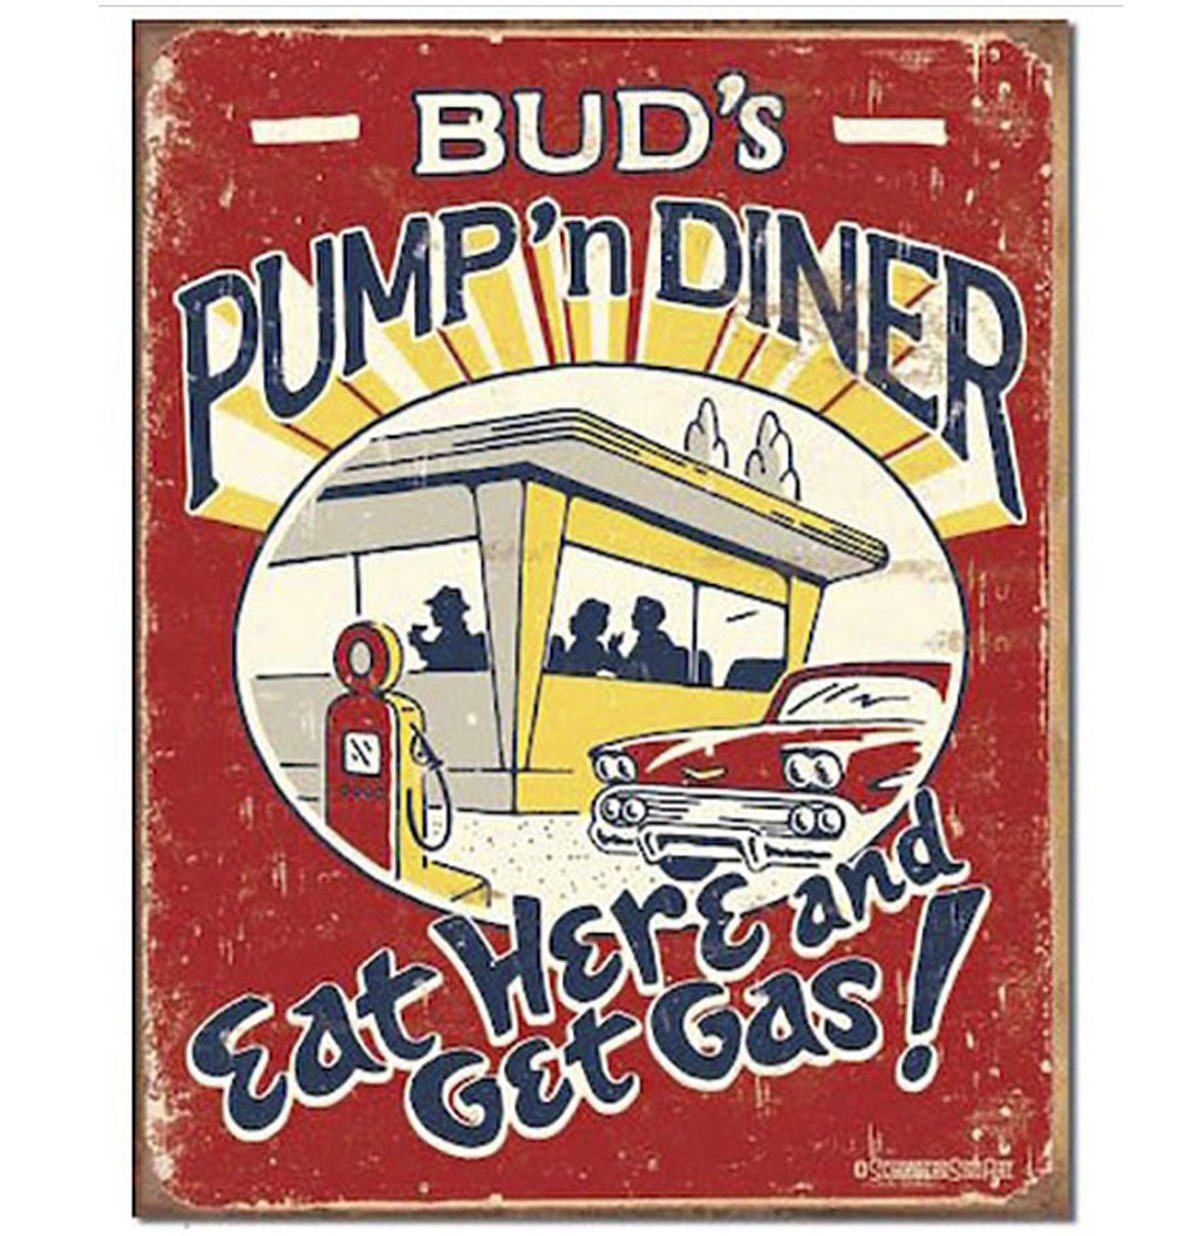 Metalen Poster - Bud's Pump 'n Diner Eat Here Get Gas